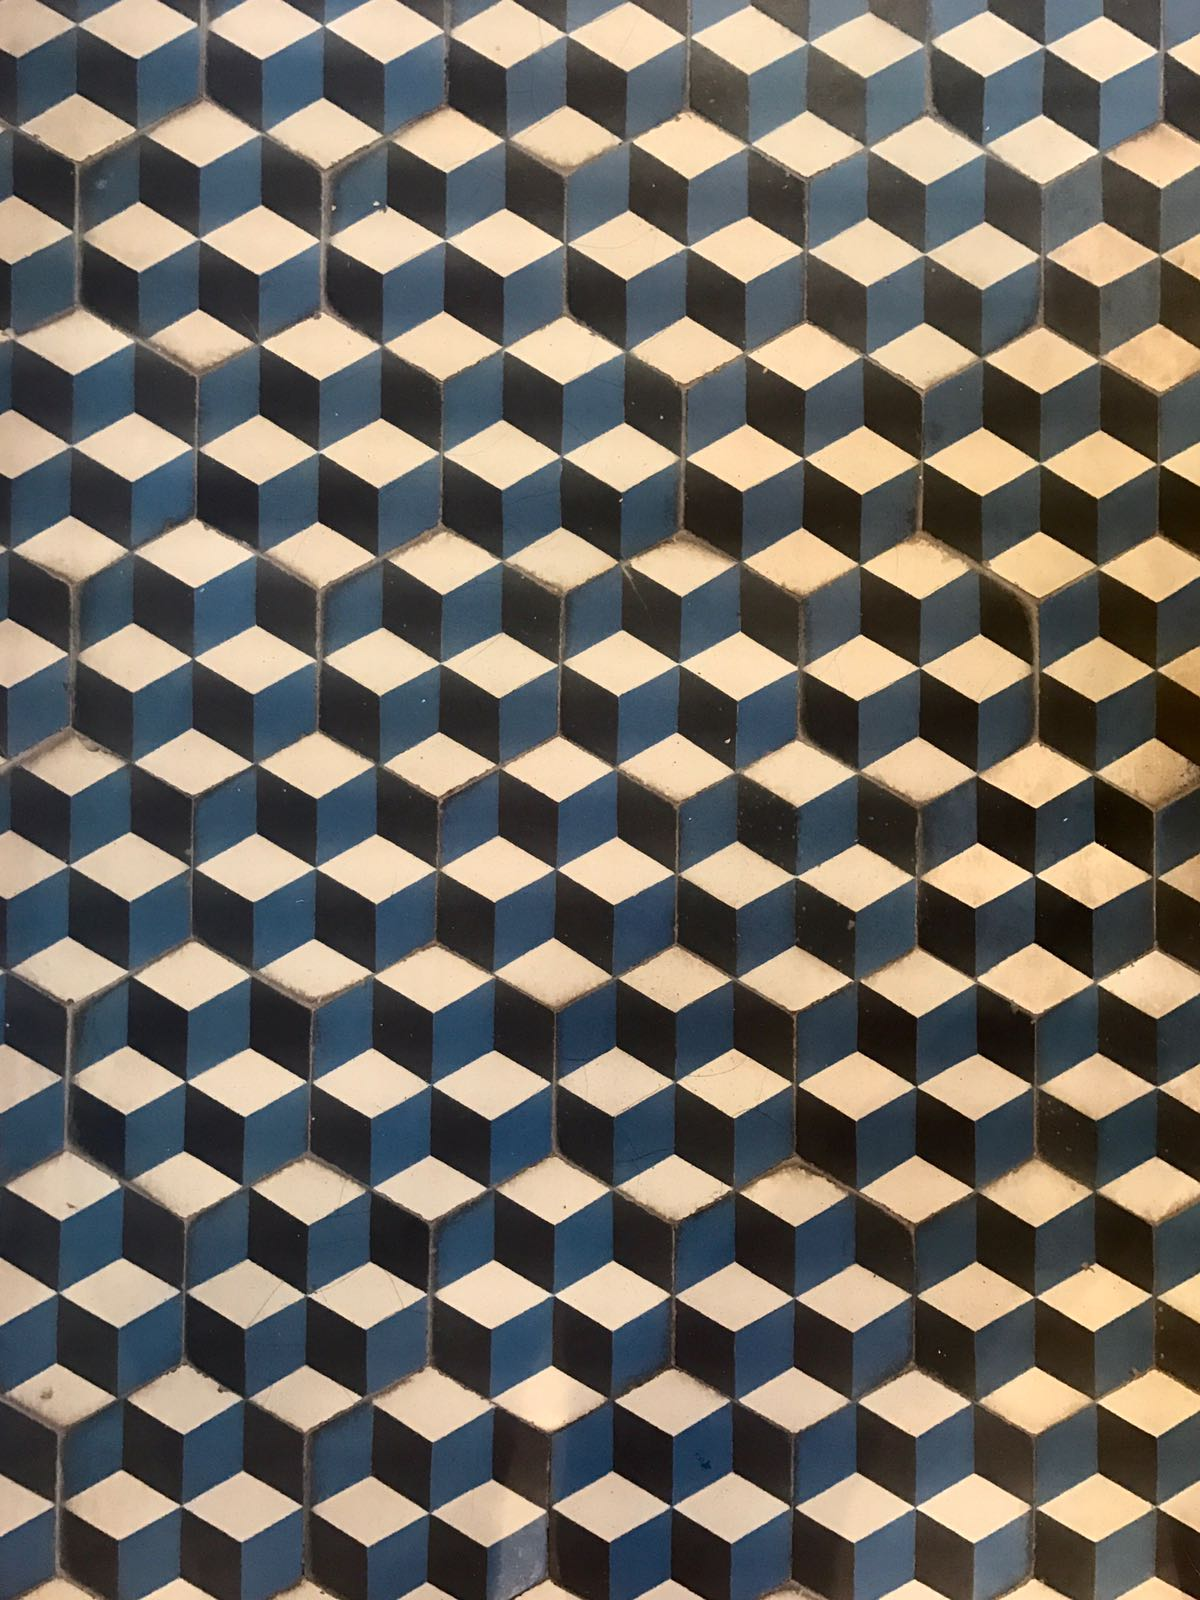 Blue, black and white tessellated tiles